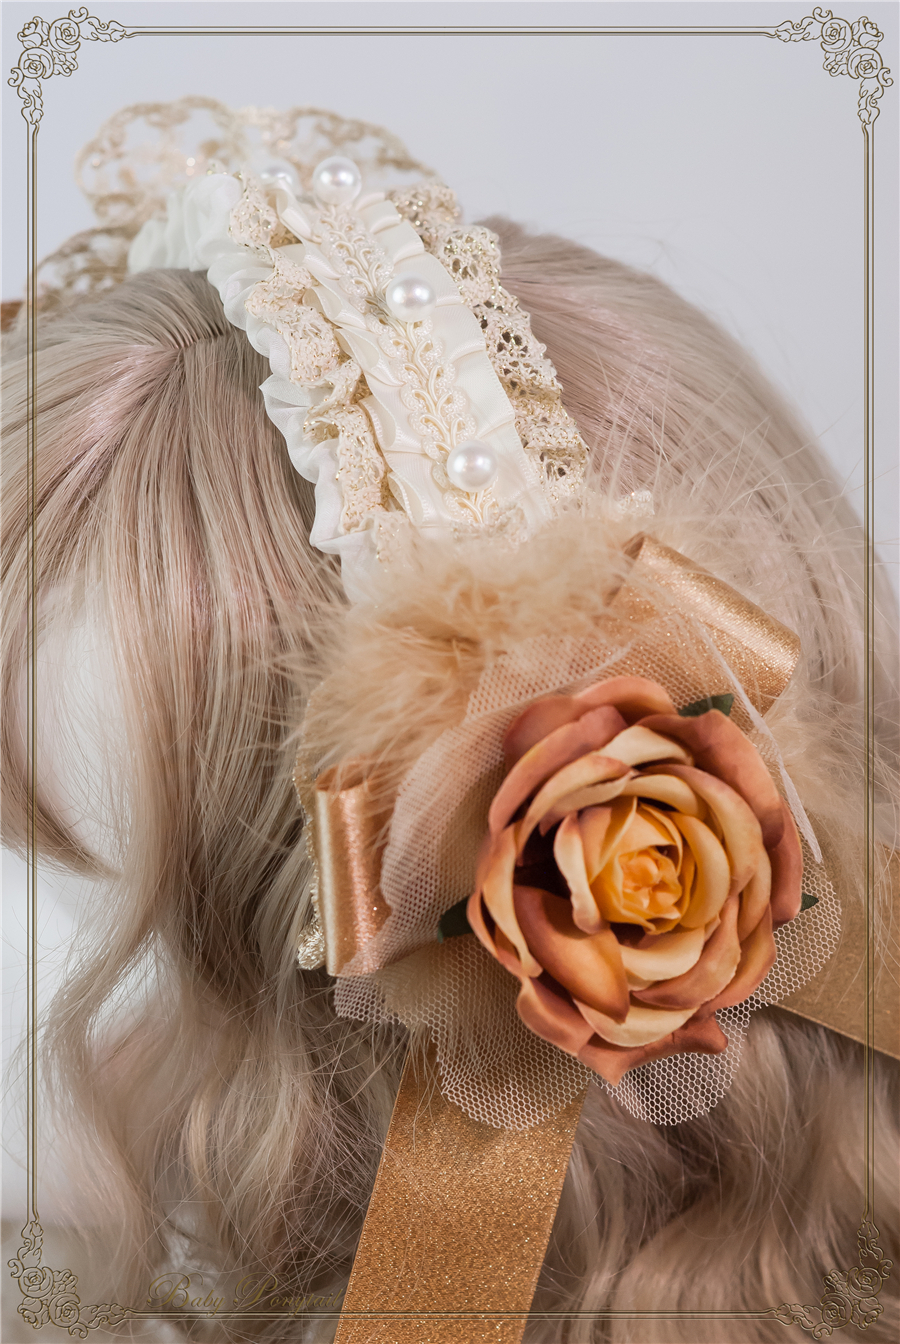 Baby Ponytail_Stock photo_Circus Princess_Rose Head Dress Golden_01.jpg